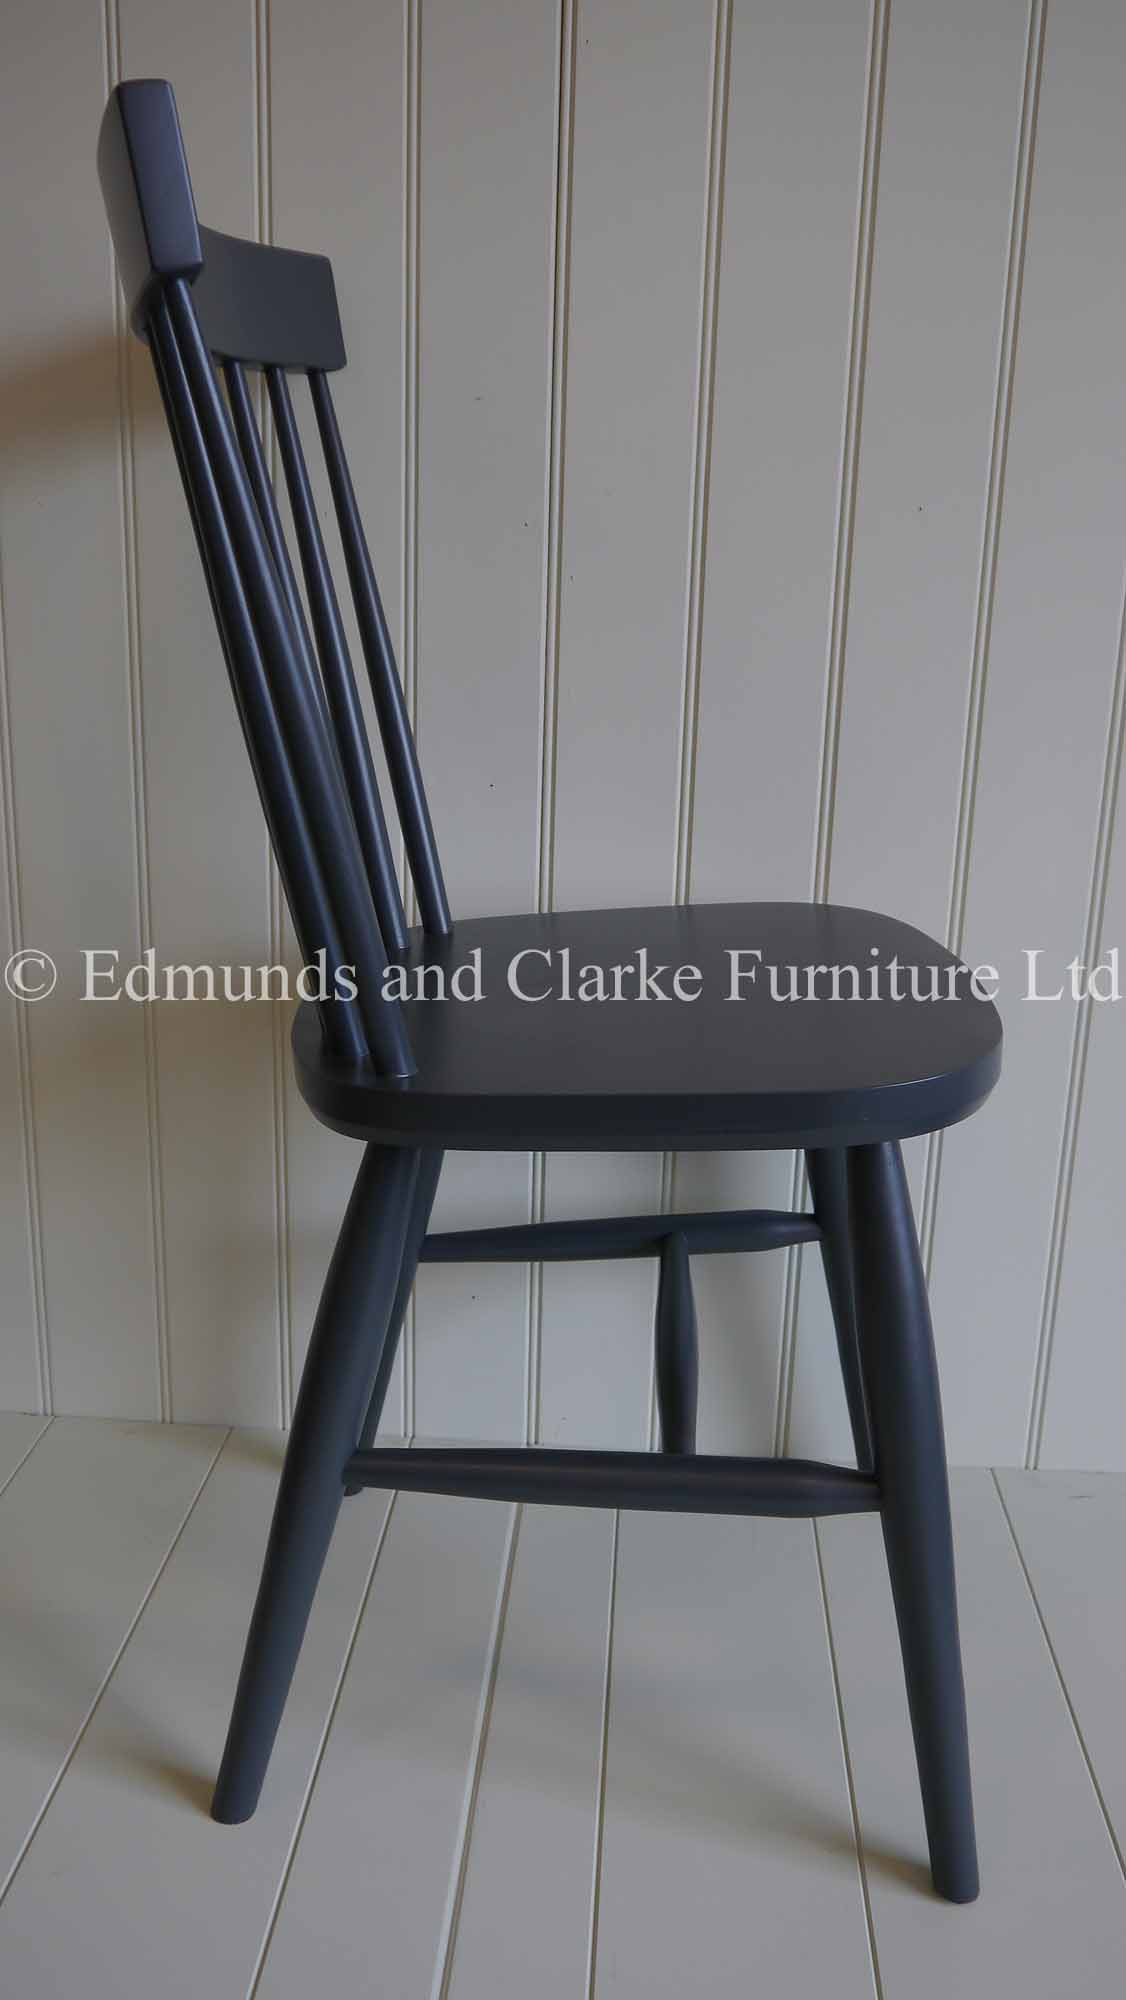 Nordic dining chair curved back rest turned legs and spindle back